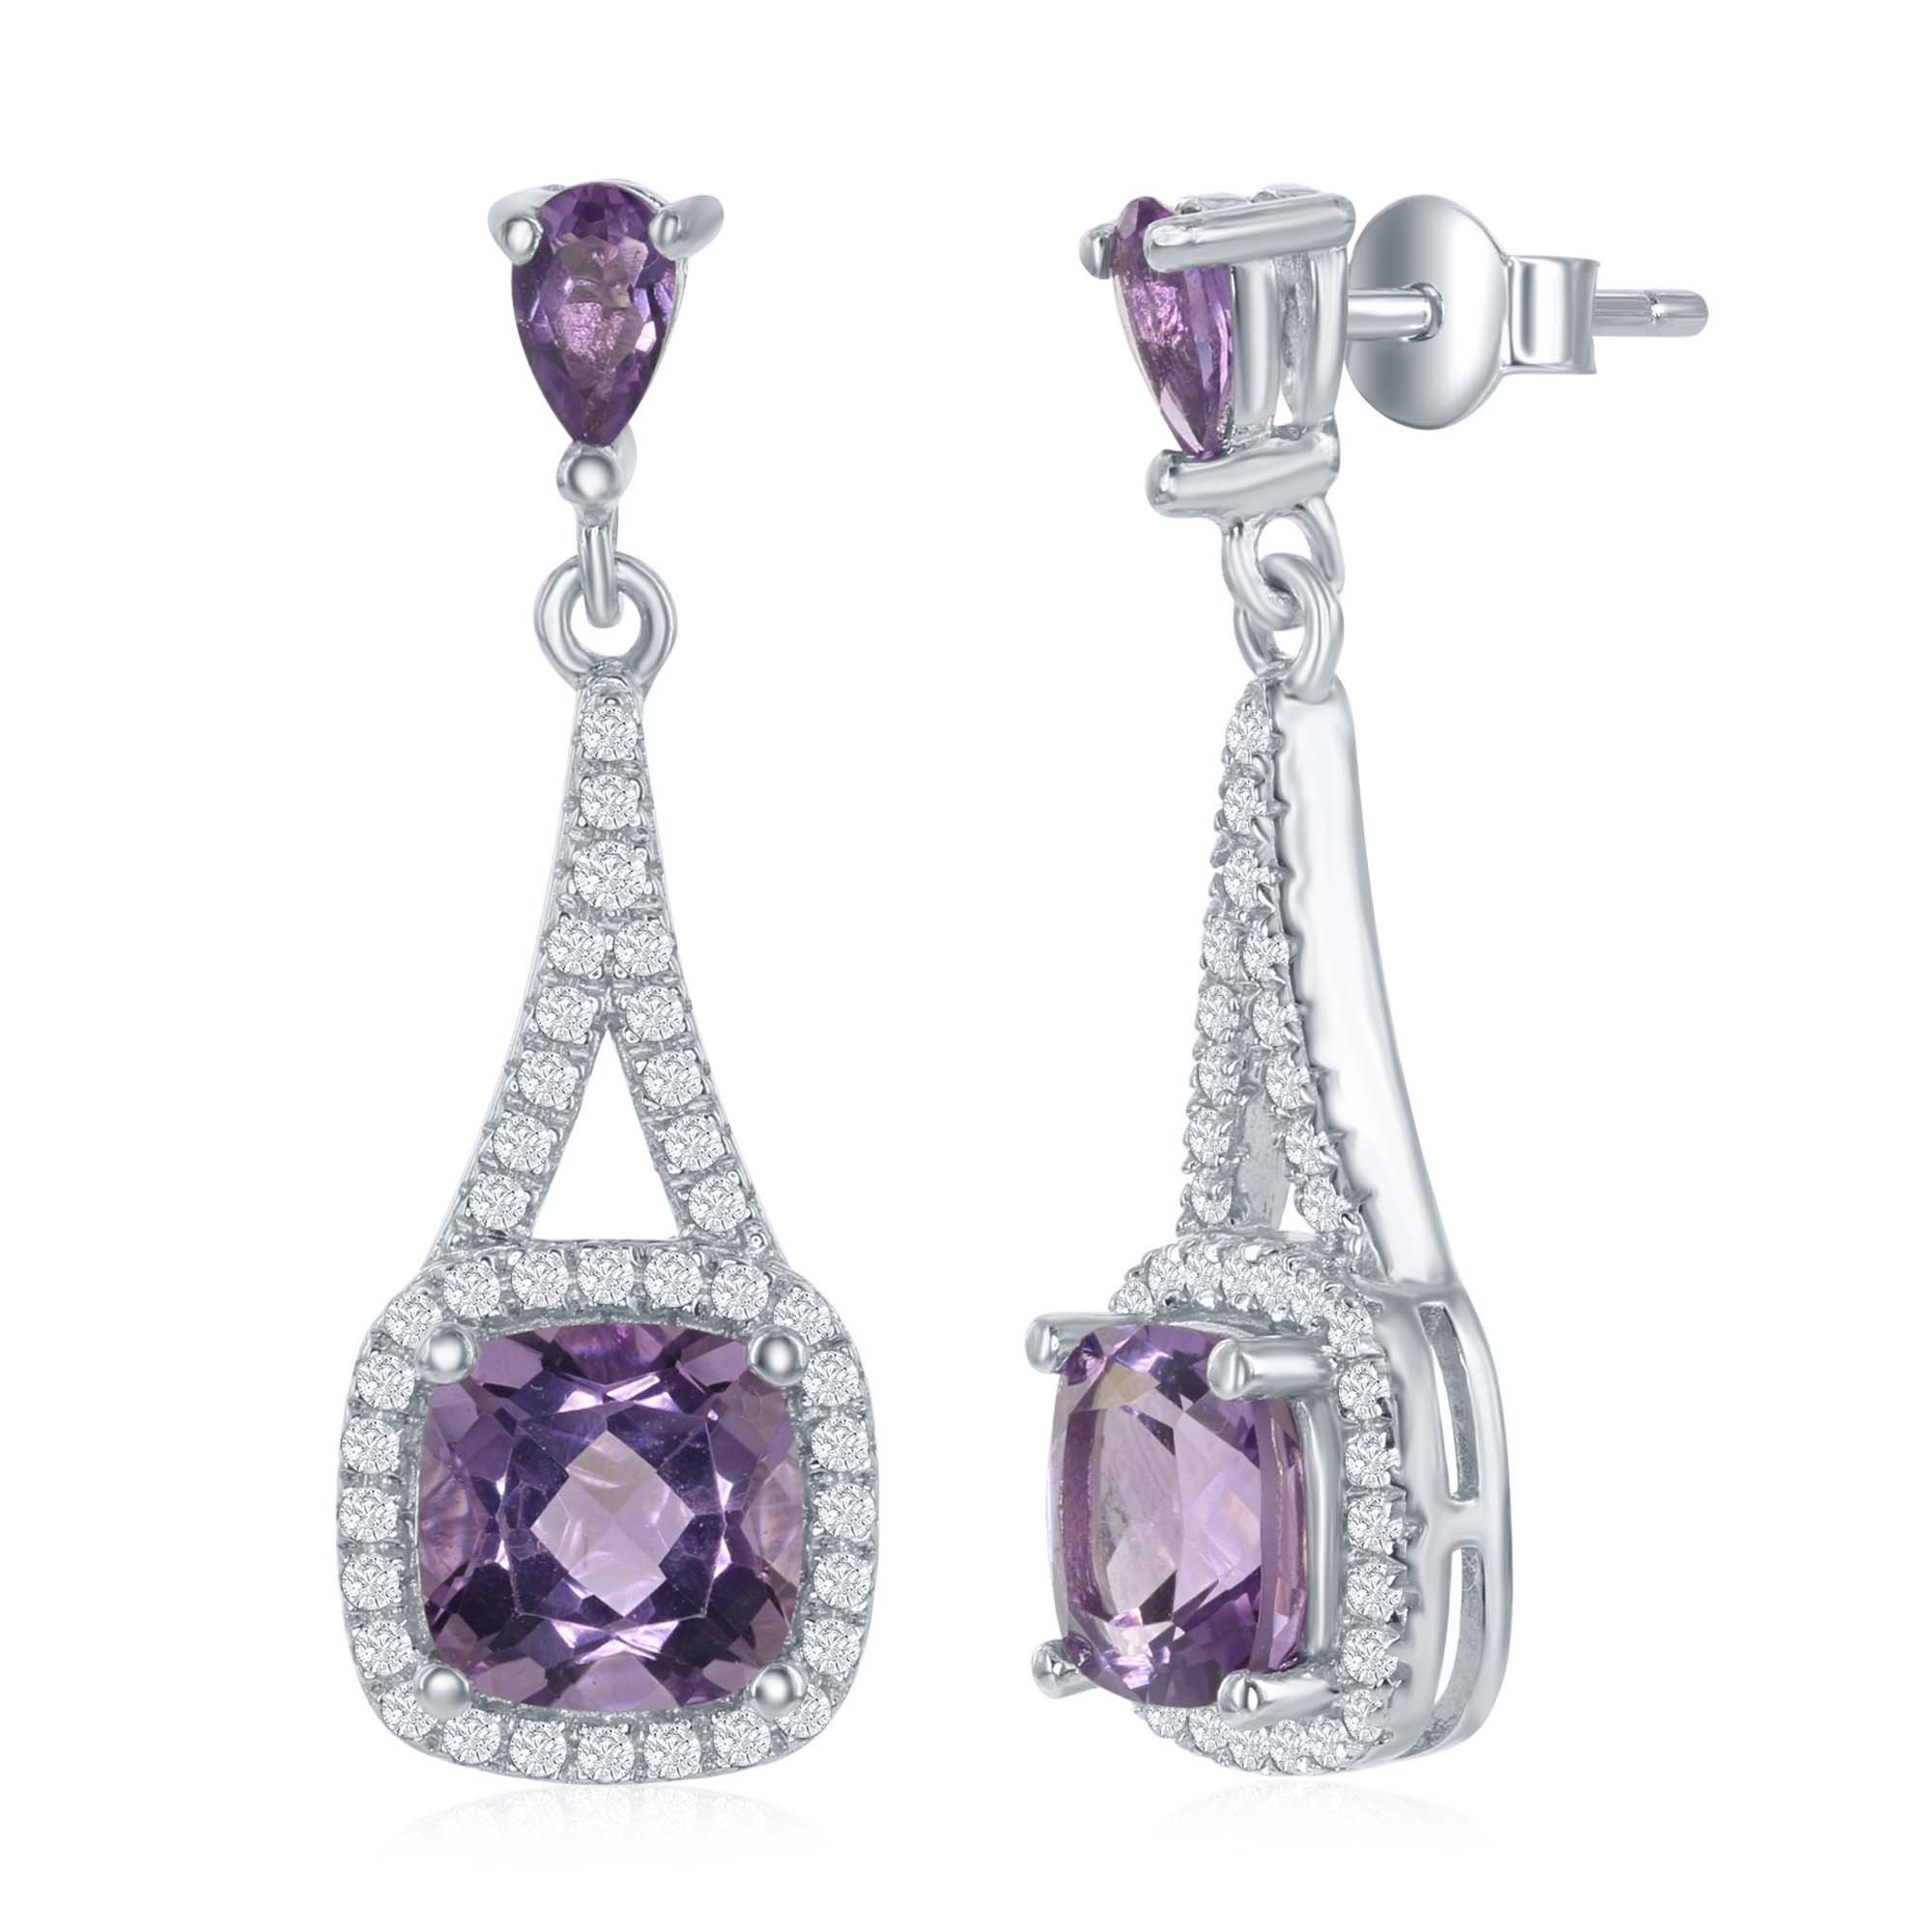 Sterling Silver High Polish Prong-Set Square Amethyst or Pink Sapphire with White Topaz Border Earrings by Beaux Bijoux